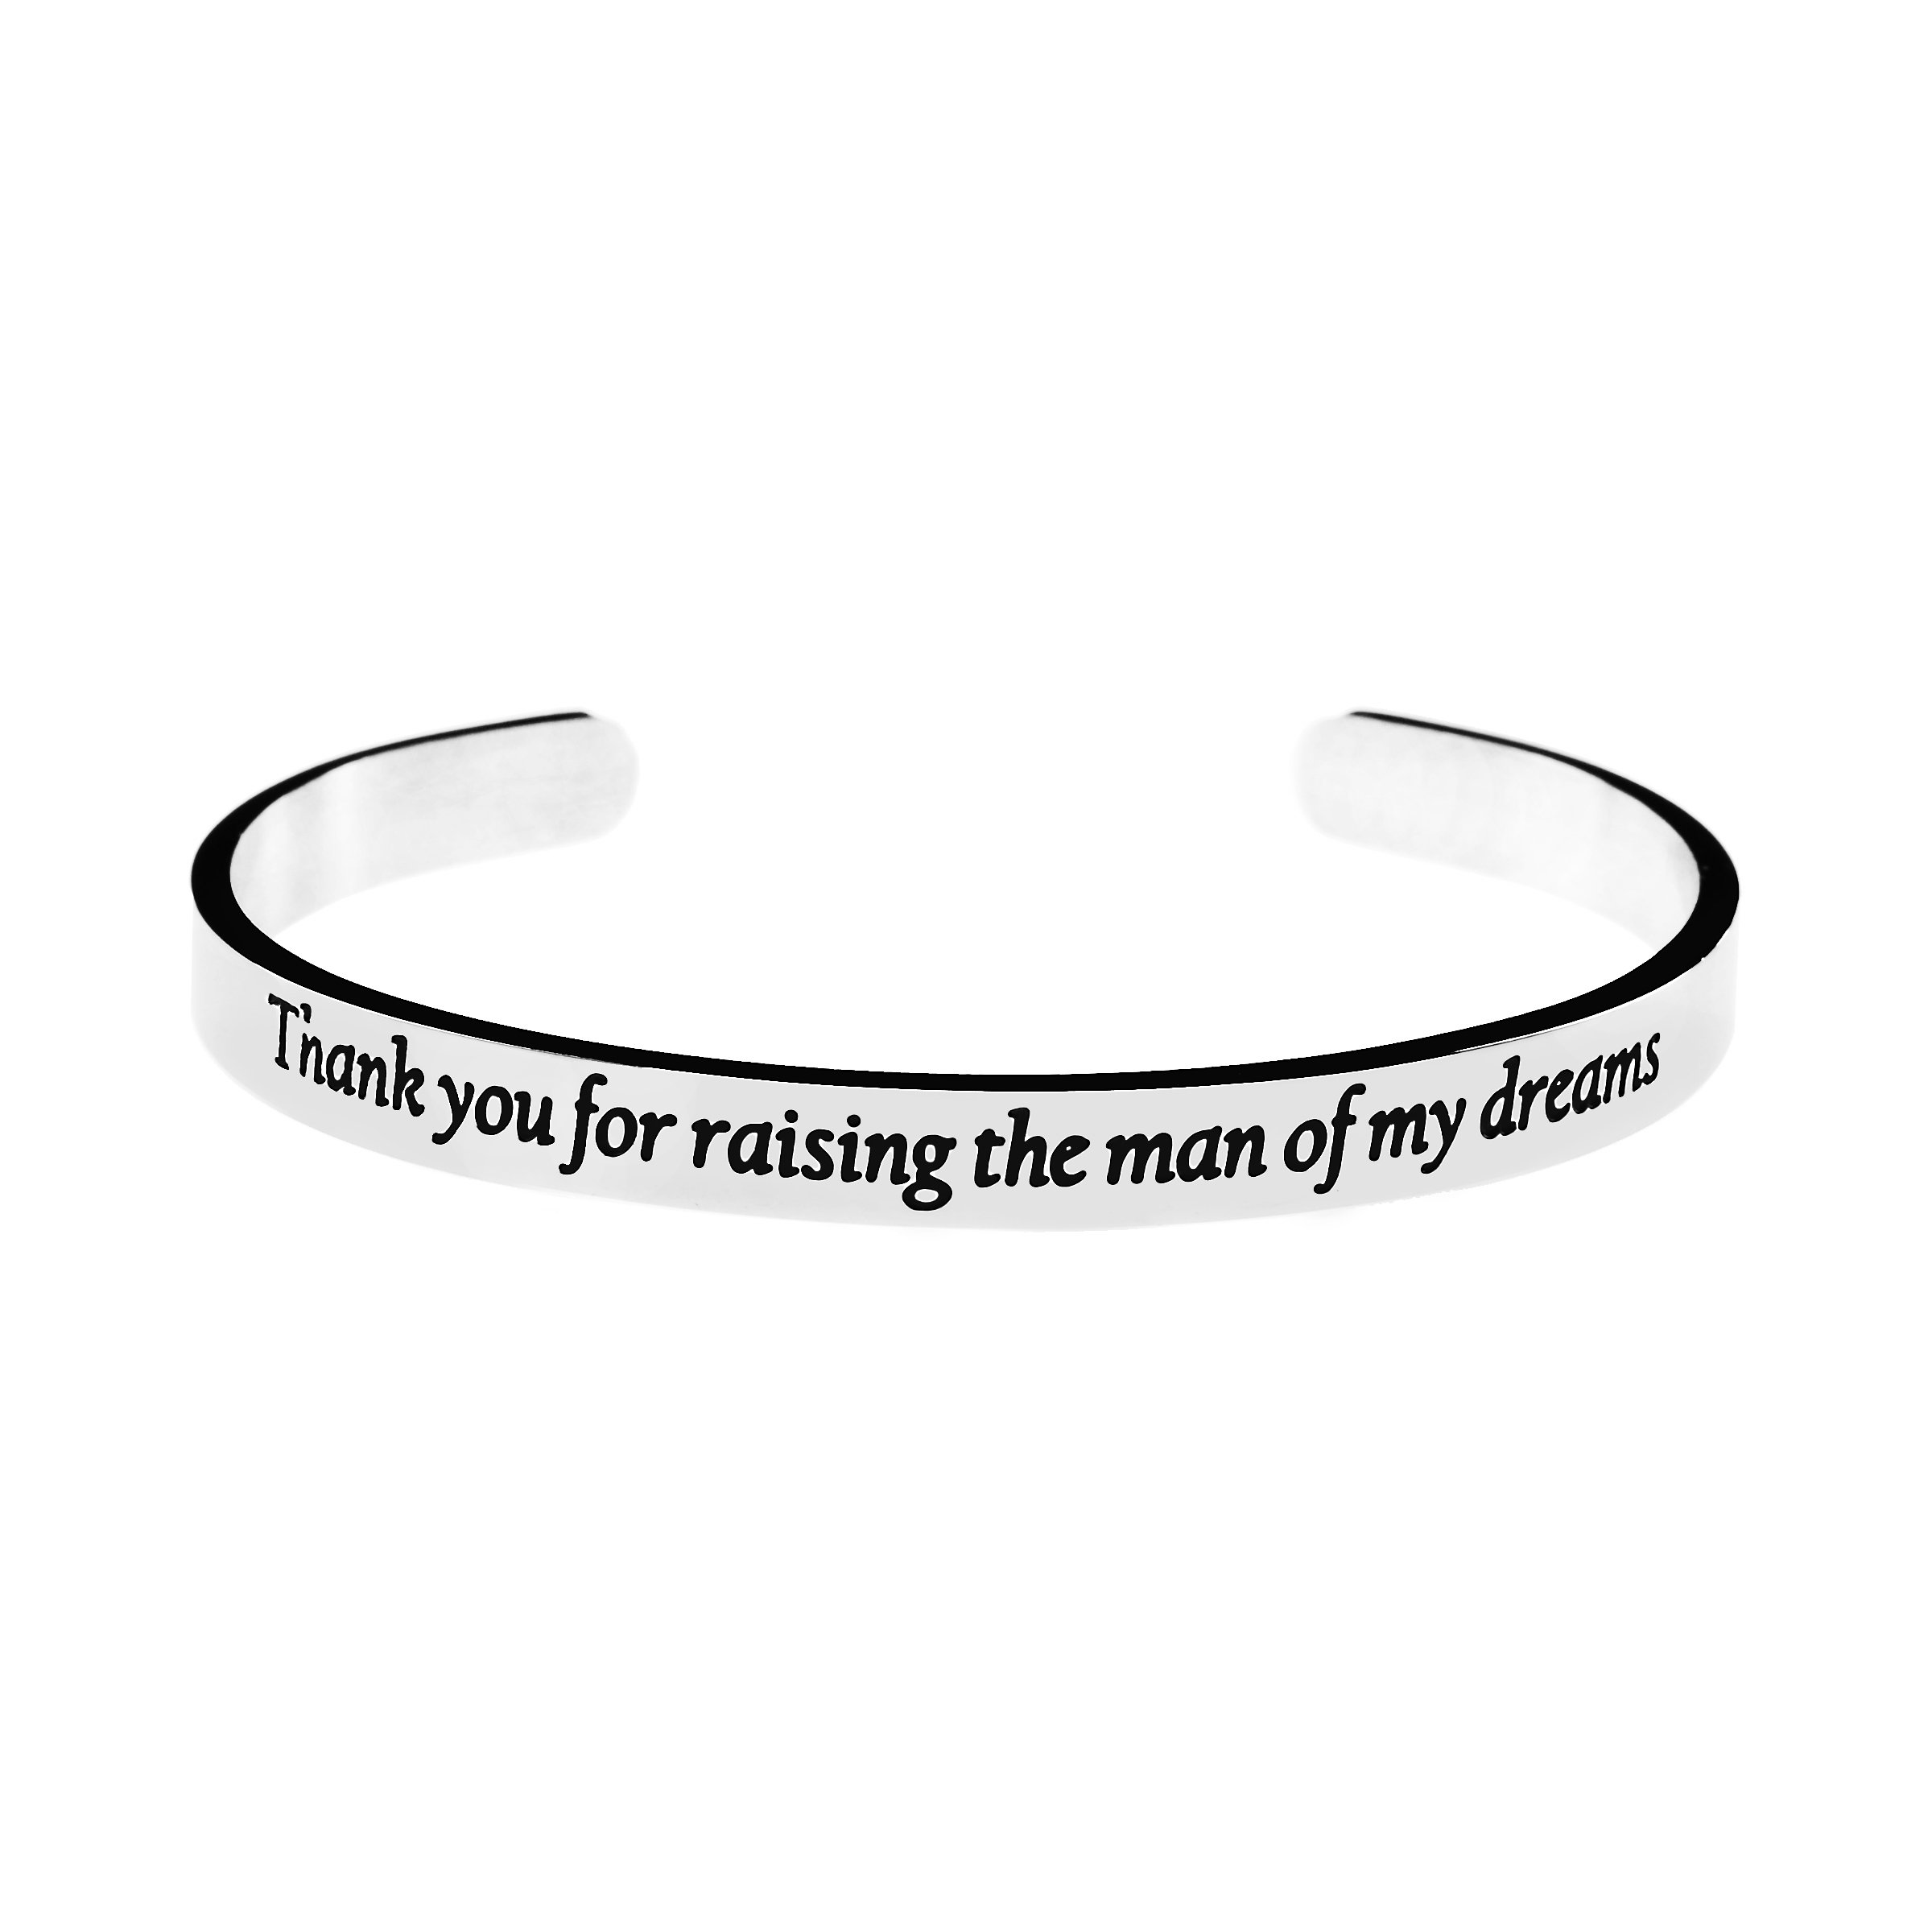 Joycuff Mother of in Law Jewelry Wedding Gift Inspirational Cuff Bangle Bracelets Saying Engraving Personalized Stainless Steel Jewellery (Thank you for raising the man of my dreams)